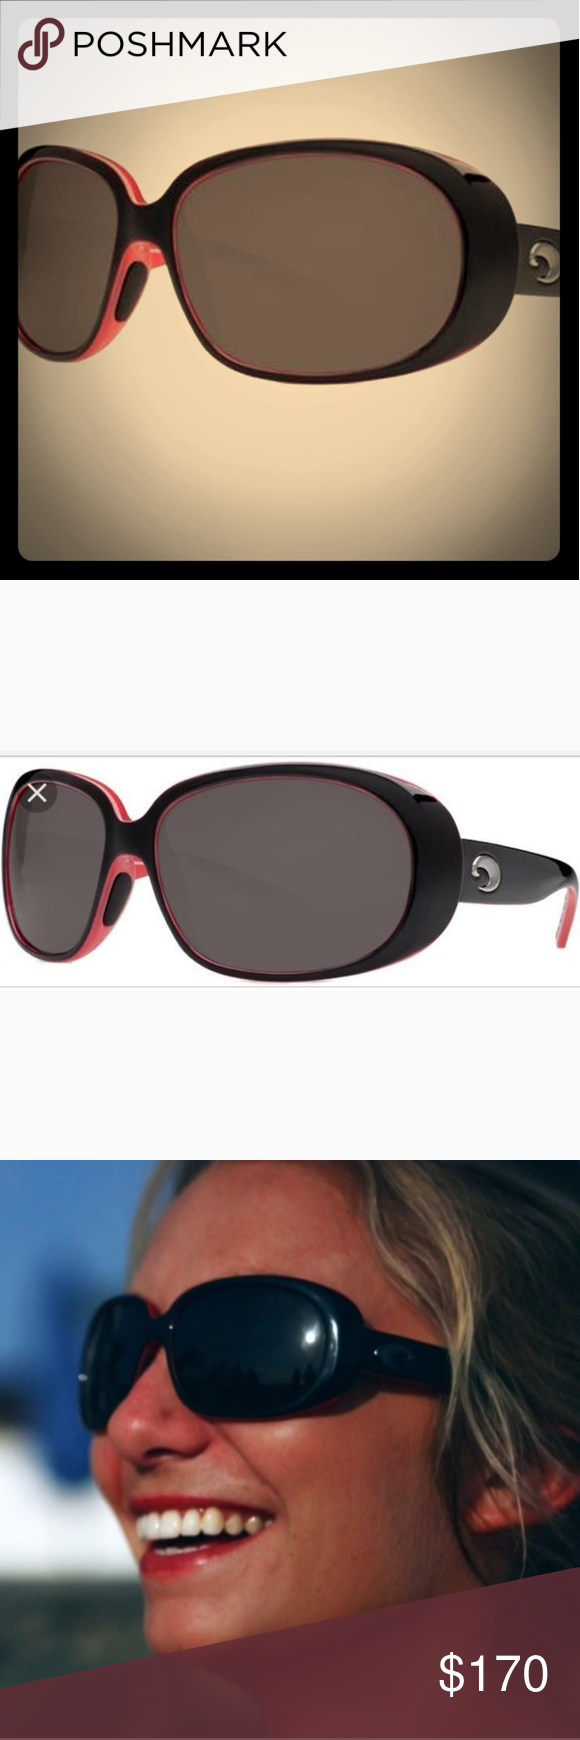 fe071bacbd63 Costa Sunglasses discontinued style-like new Style: Hammock These strong  oval frames give a nod to classic